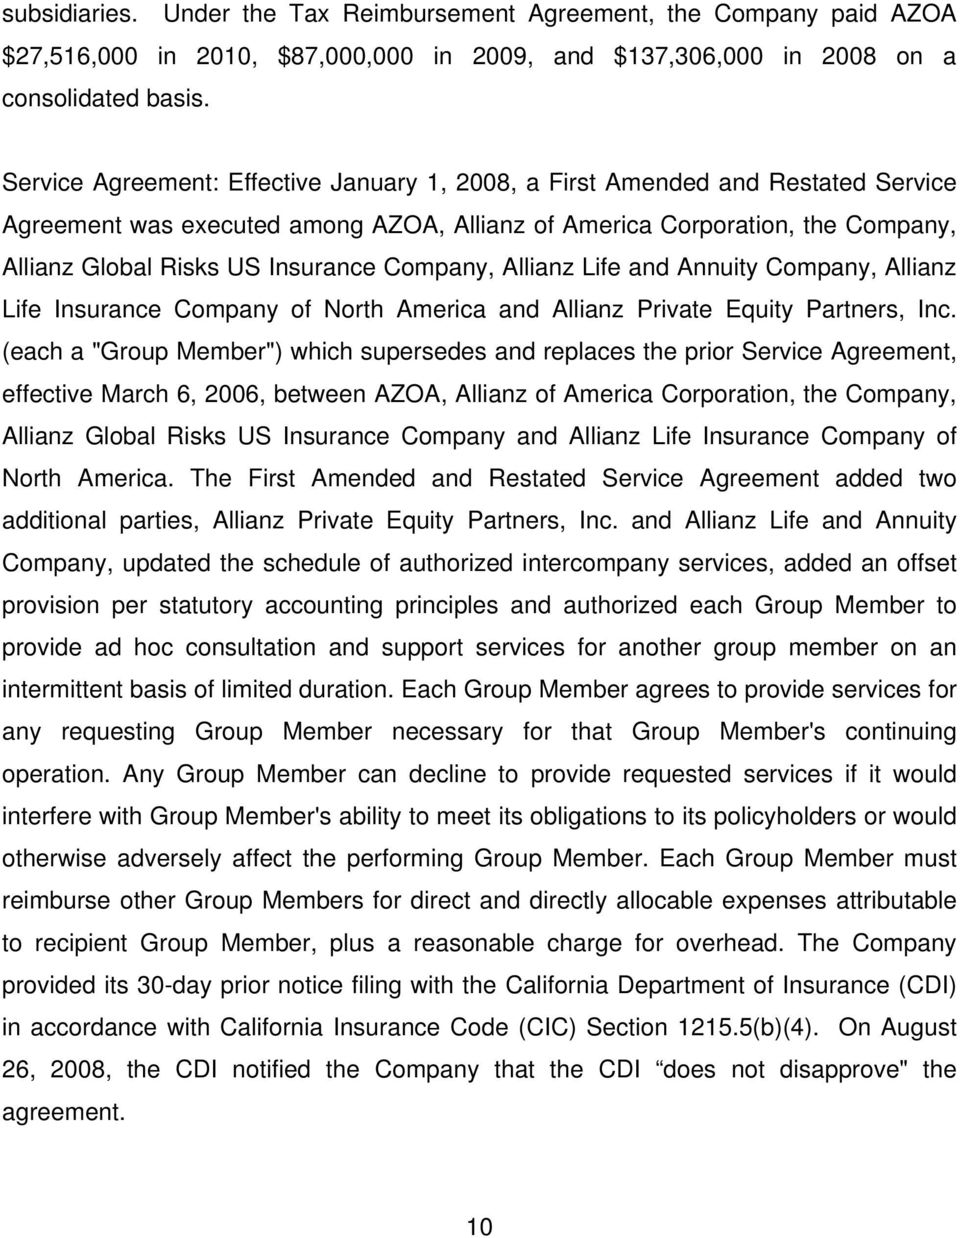 Company, Allianz Life and Annuity Company, Allianz Life Insurance Company of North America and Allianz Private Equity Partners, Inc.